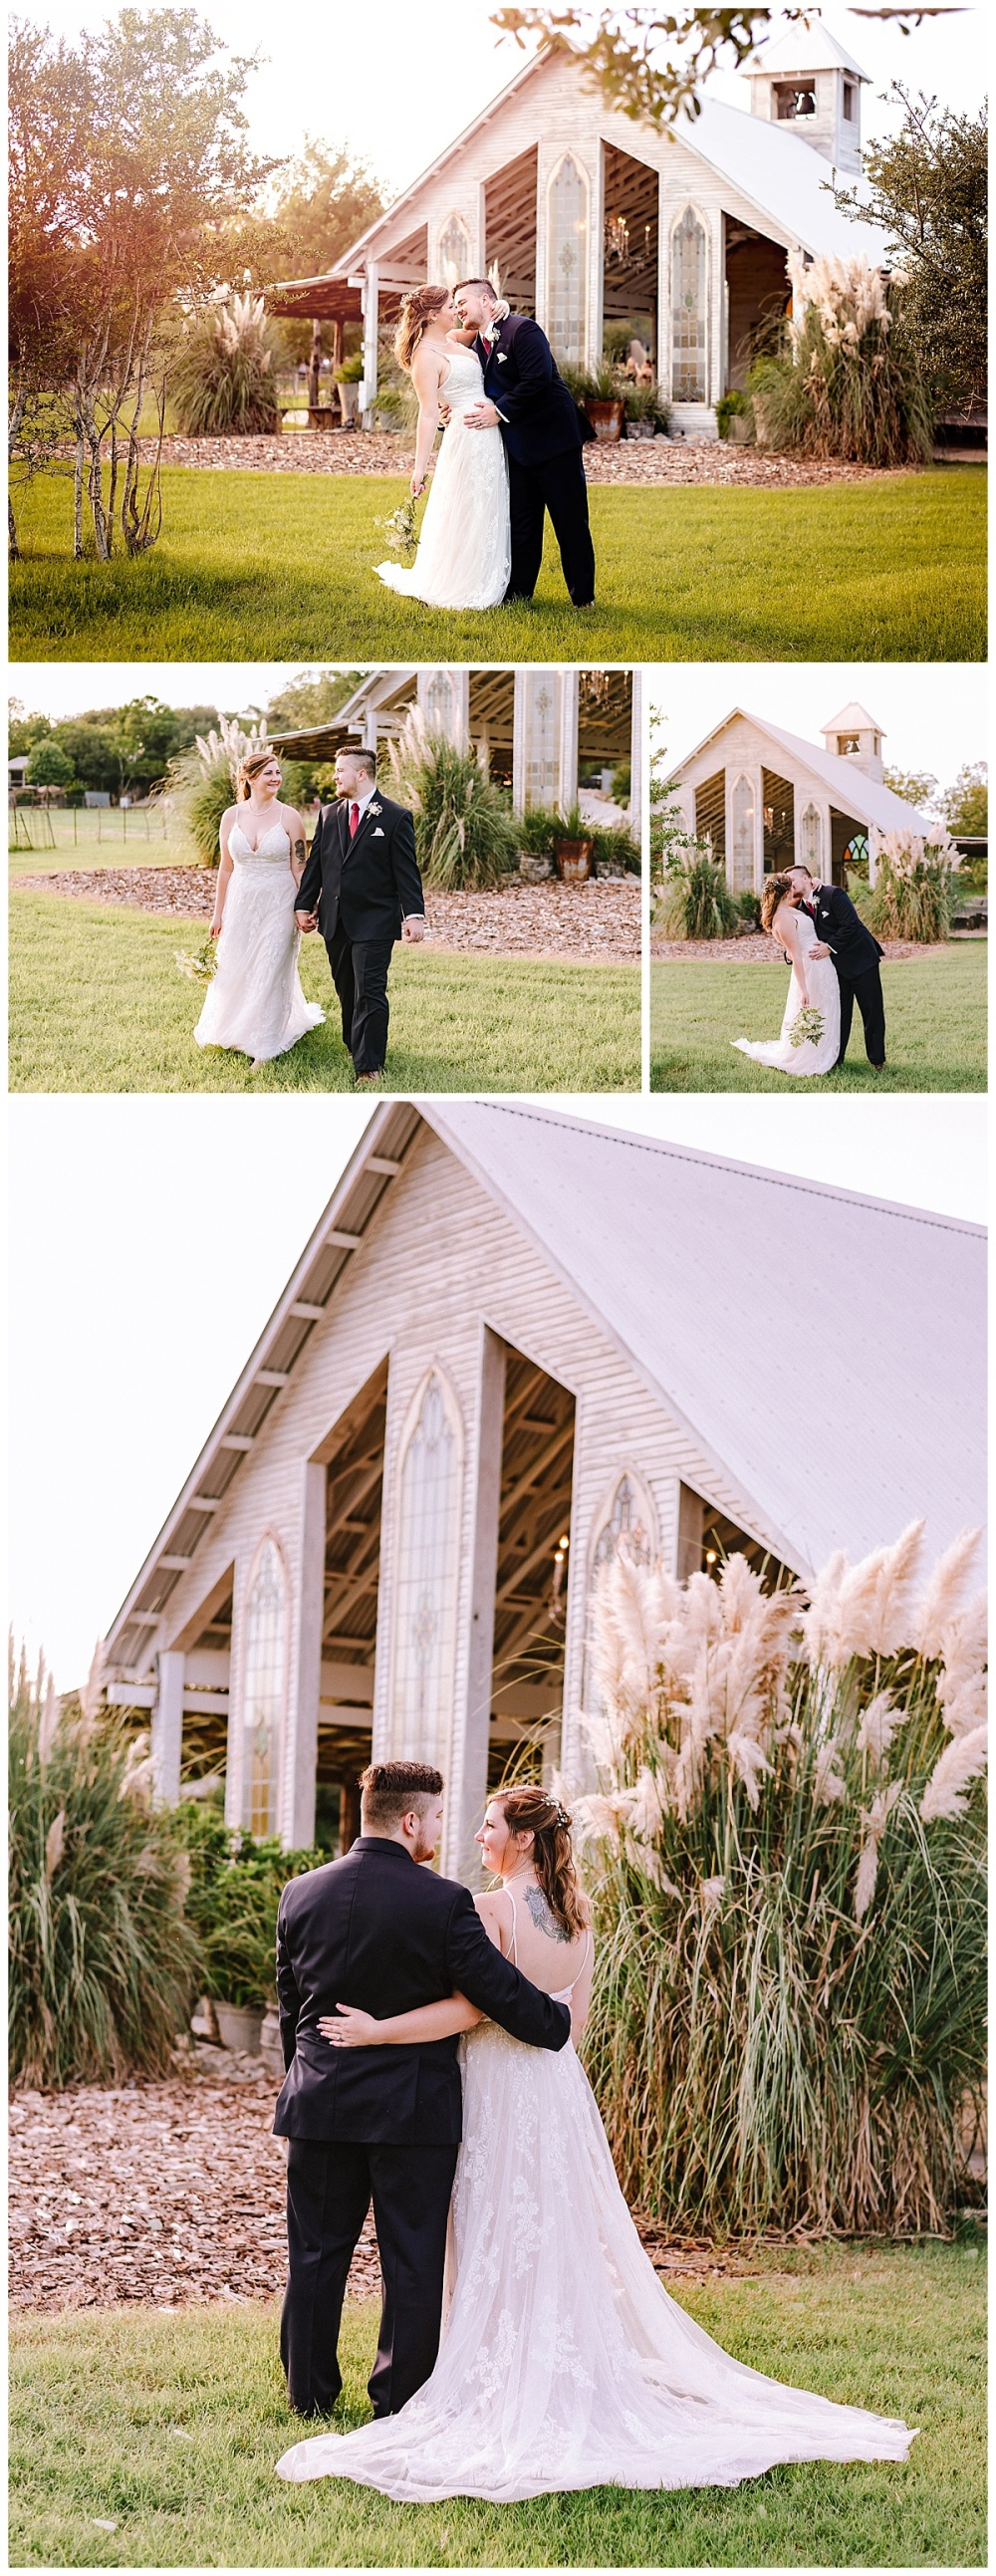 Texas-Wedding-Photographer-Gruene-Estate-Open-Air-Chapel-Carly-Barton-Photography-Katie-Nic_0062.jpg